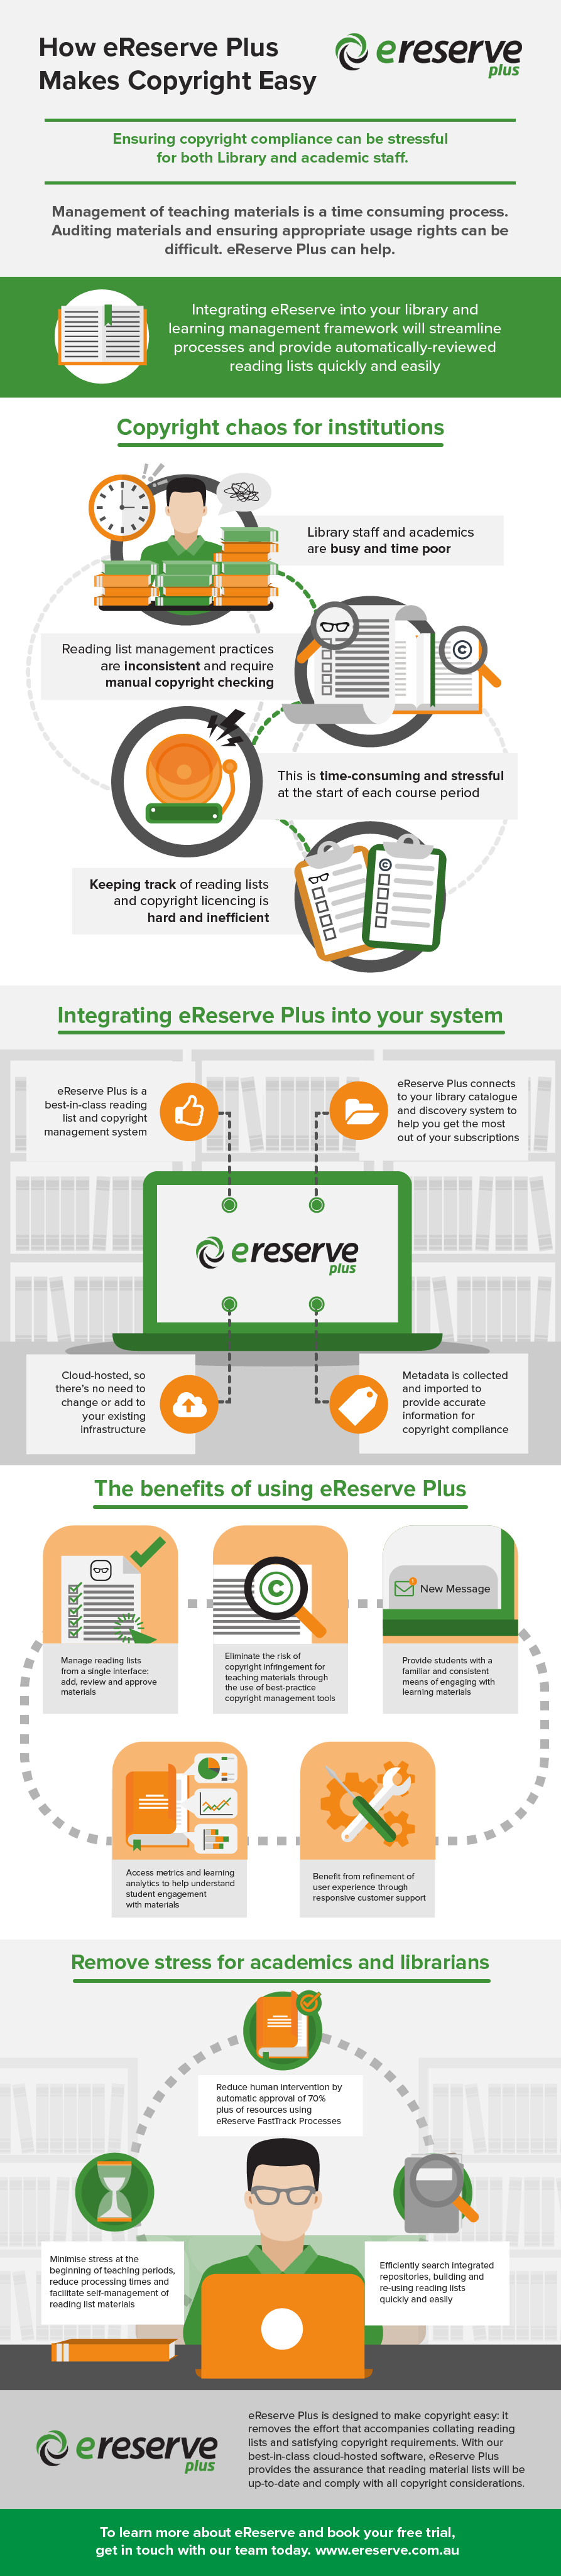 Learn how we solve copyright chaos with eReserve Plus.